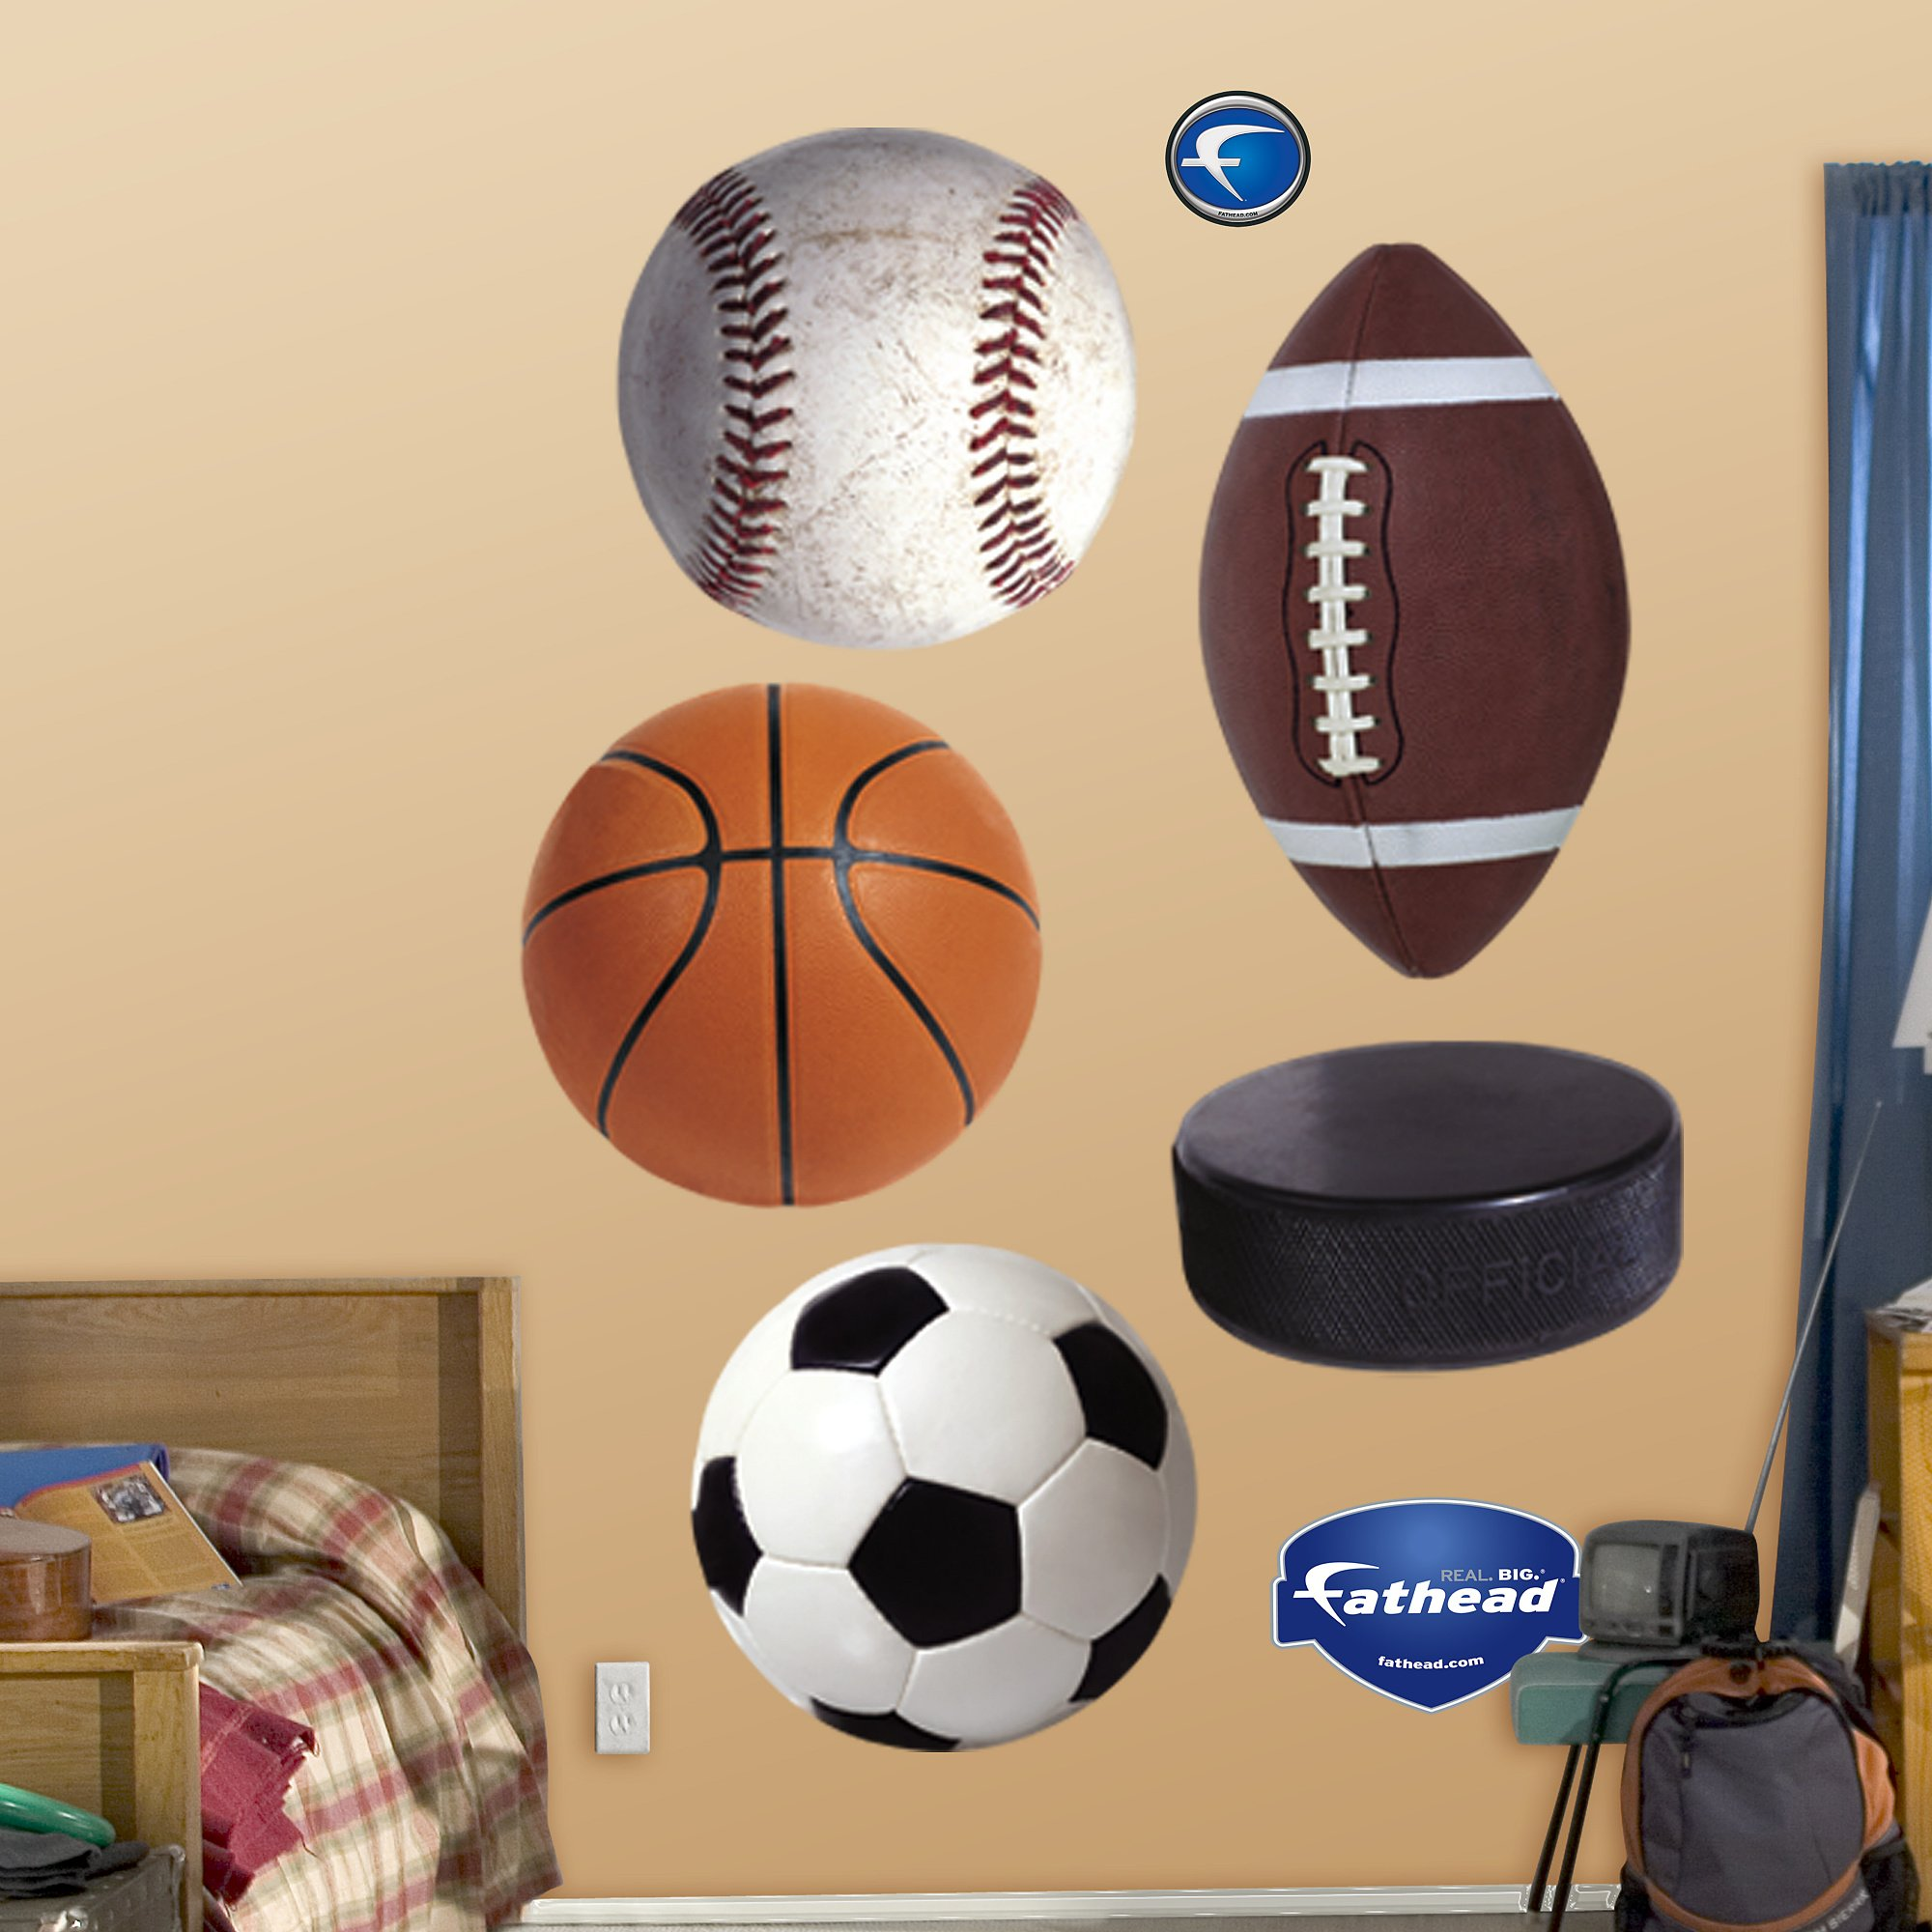 FATHEAD Assorted Sports Ball Graphics Graphic Wall Décor by FATHEAD